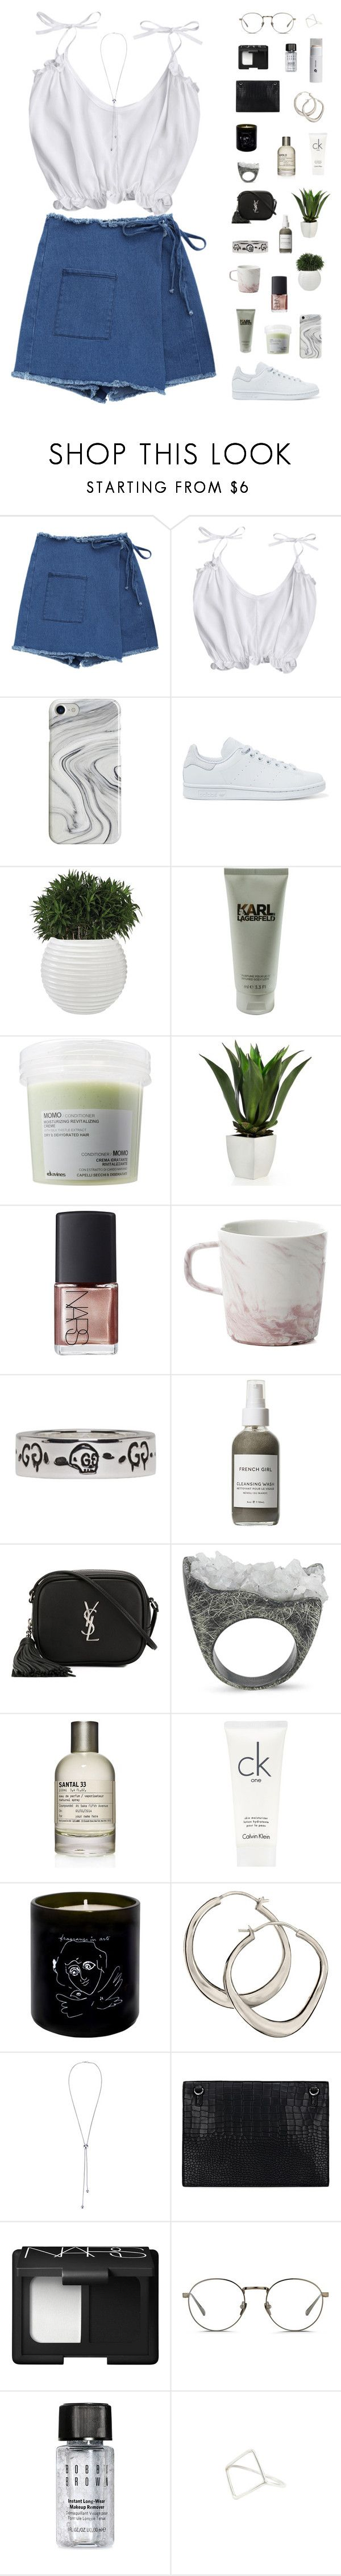 """""""Wrap skirt"""" by f-resh on Polyvore featuring Recover, adidas Originals, Karl Lagerfeld, Davines, NARS Cosmetics, Gucci, French Girl, Yves Saint Laurent, Burcu Okut and Le Labo"""